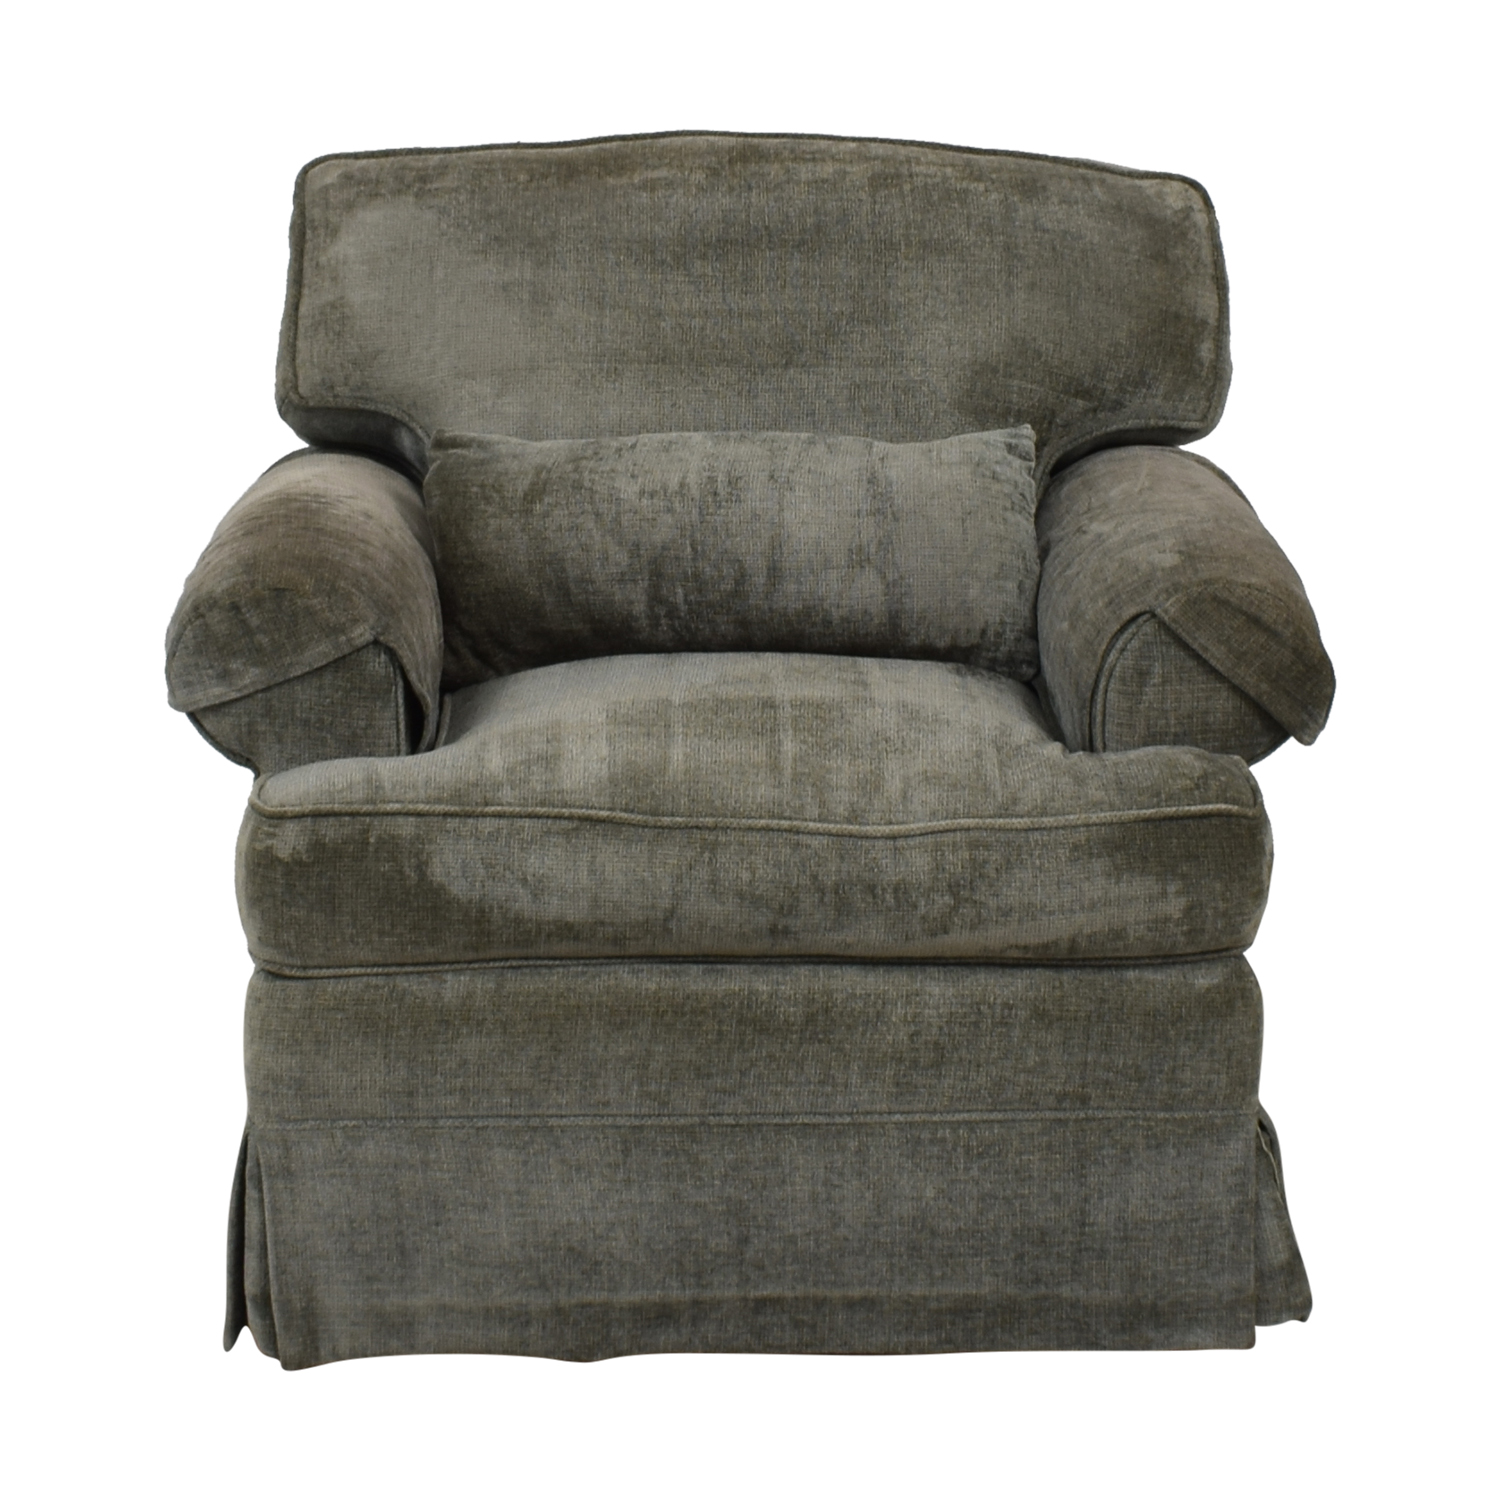 shop Classic Sofa NYC Grey Blue Oxford Armchair Classic Sofa NYC Chairs